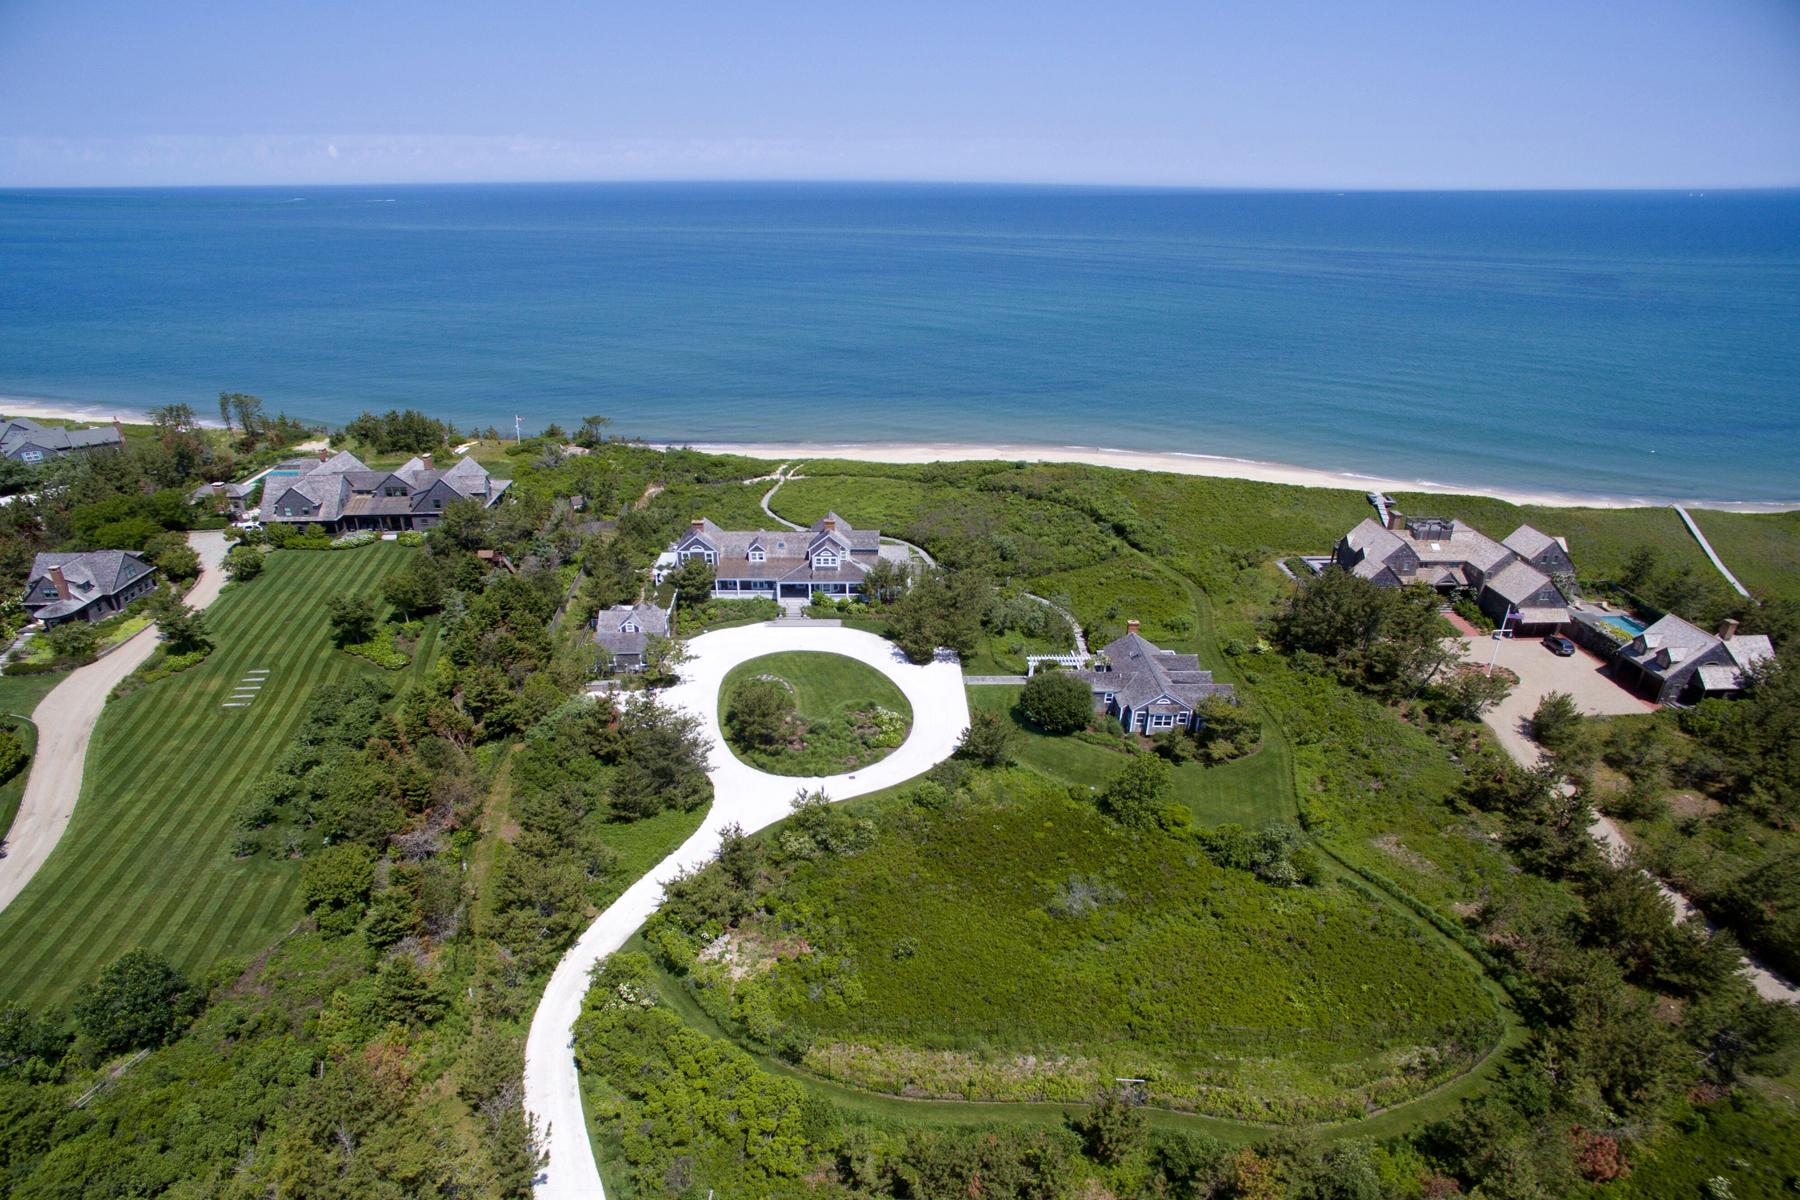 Casa Unifamiliar por un Venta en Spectacular Oceanfront Dionis! 119 Eel Point Road 119 R Eel Point Road Nantucket, Massachusetts 02554 Estados Unidos